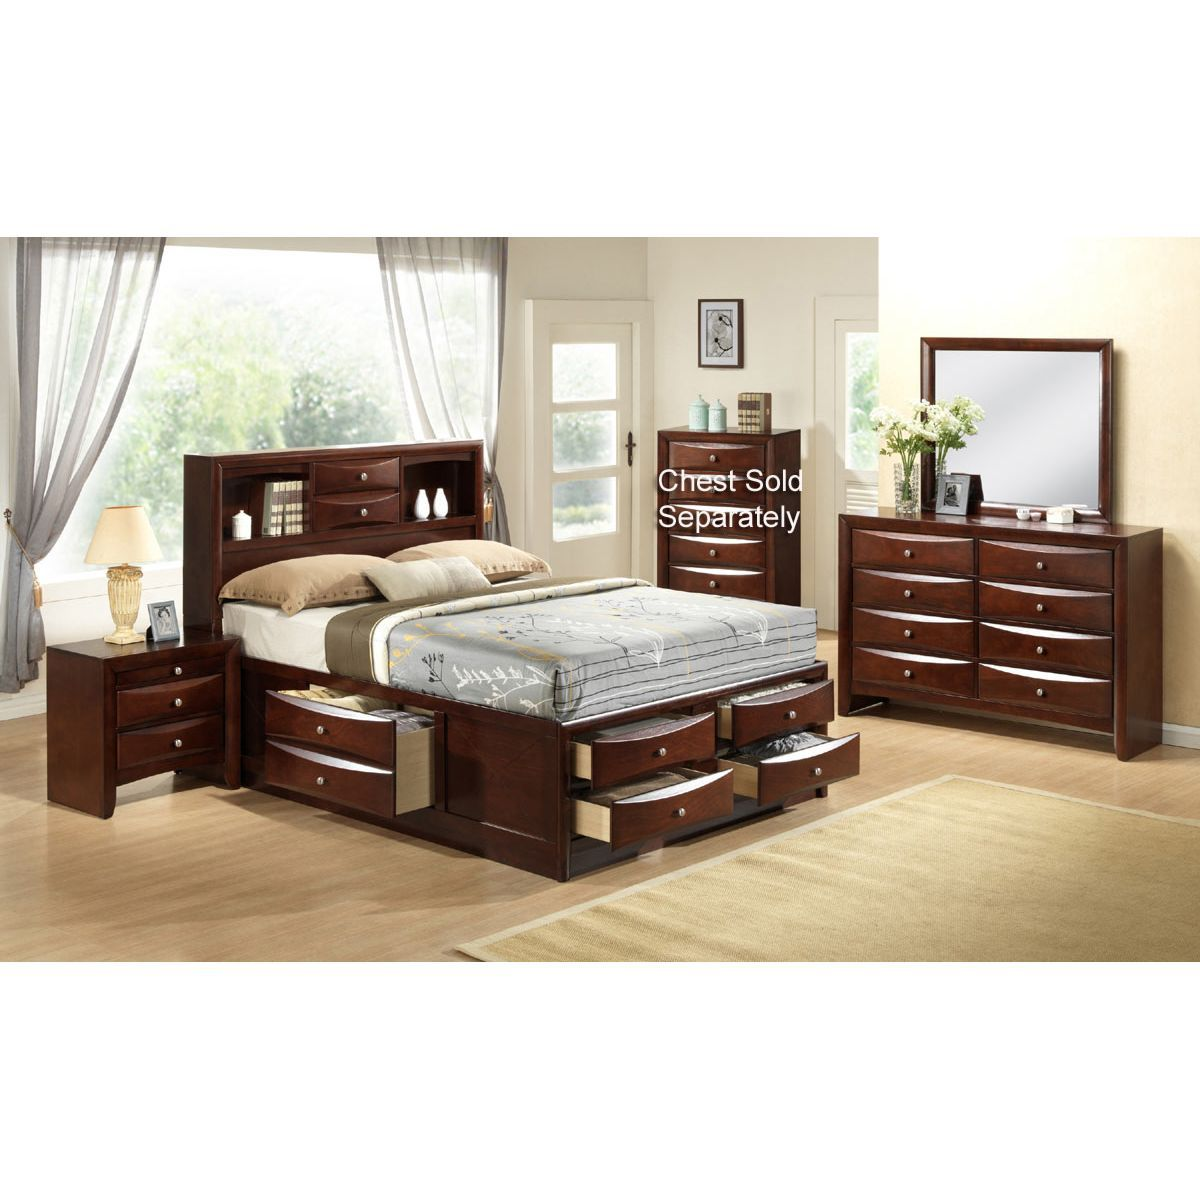 Emily 7-Piece Queen Bedroom Set - RC Willey Home Furnishings ...